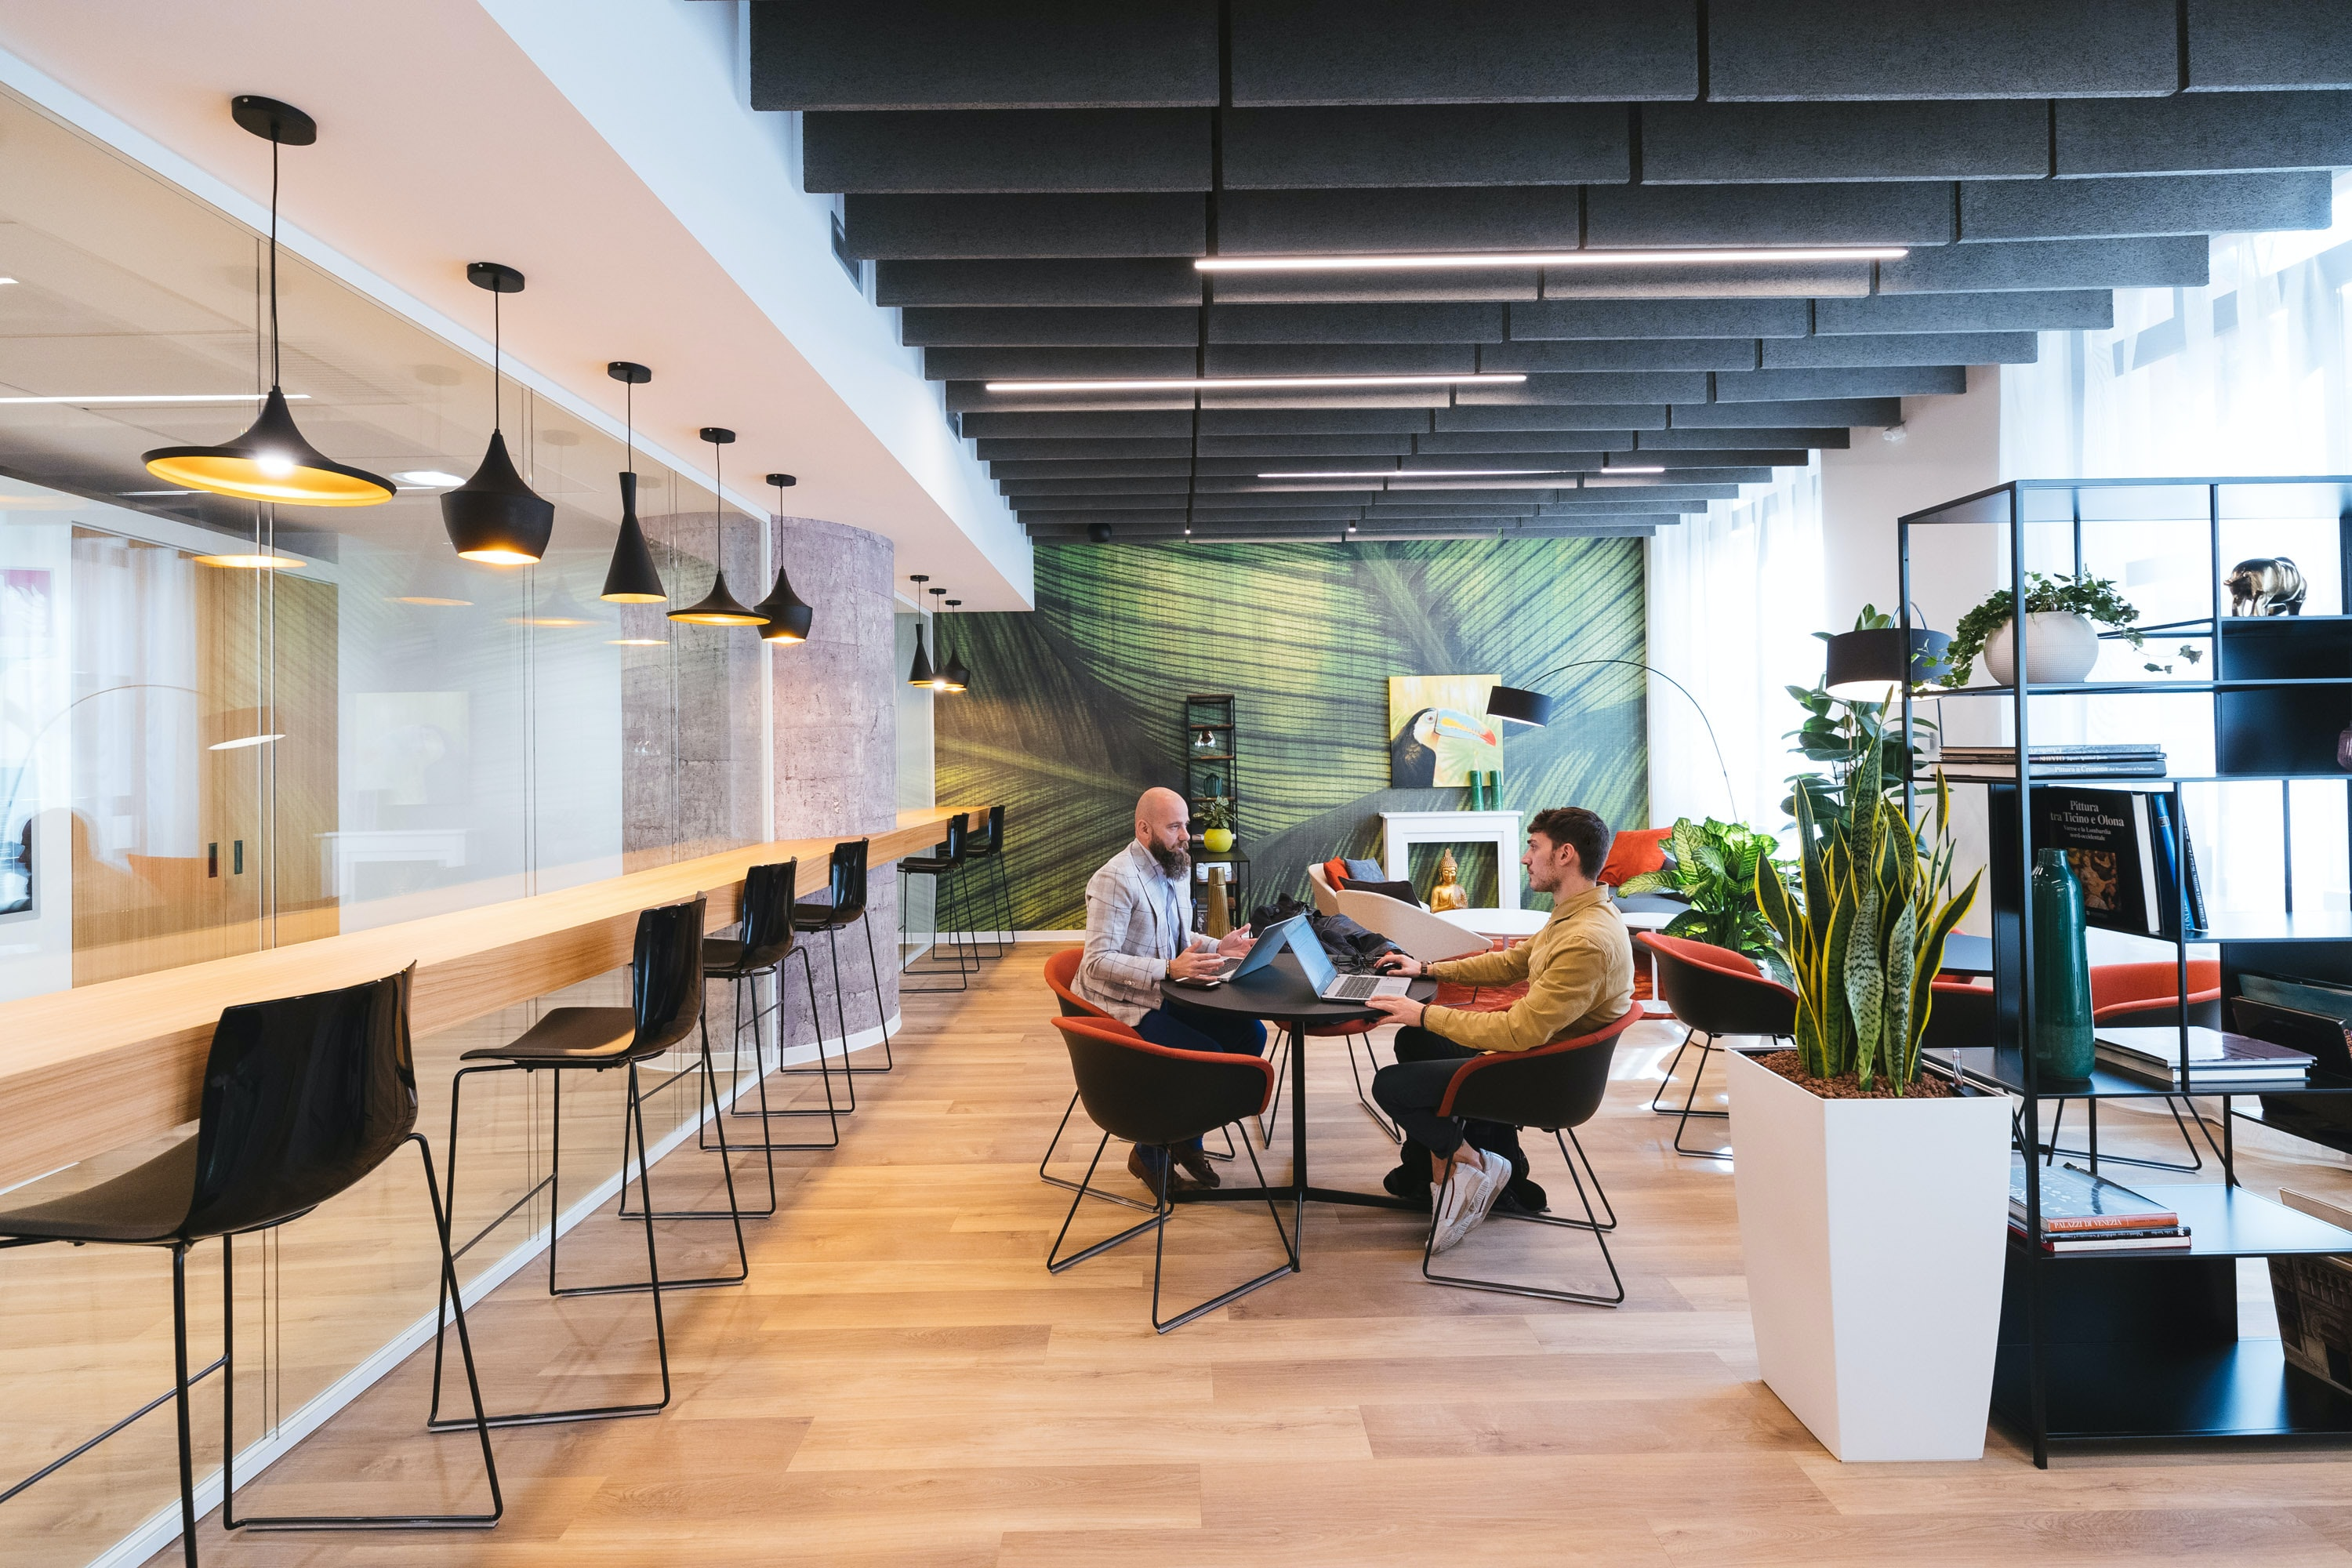 An 80/20 approach to workspace design